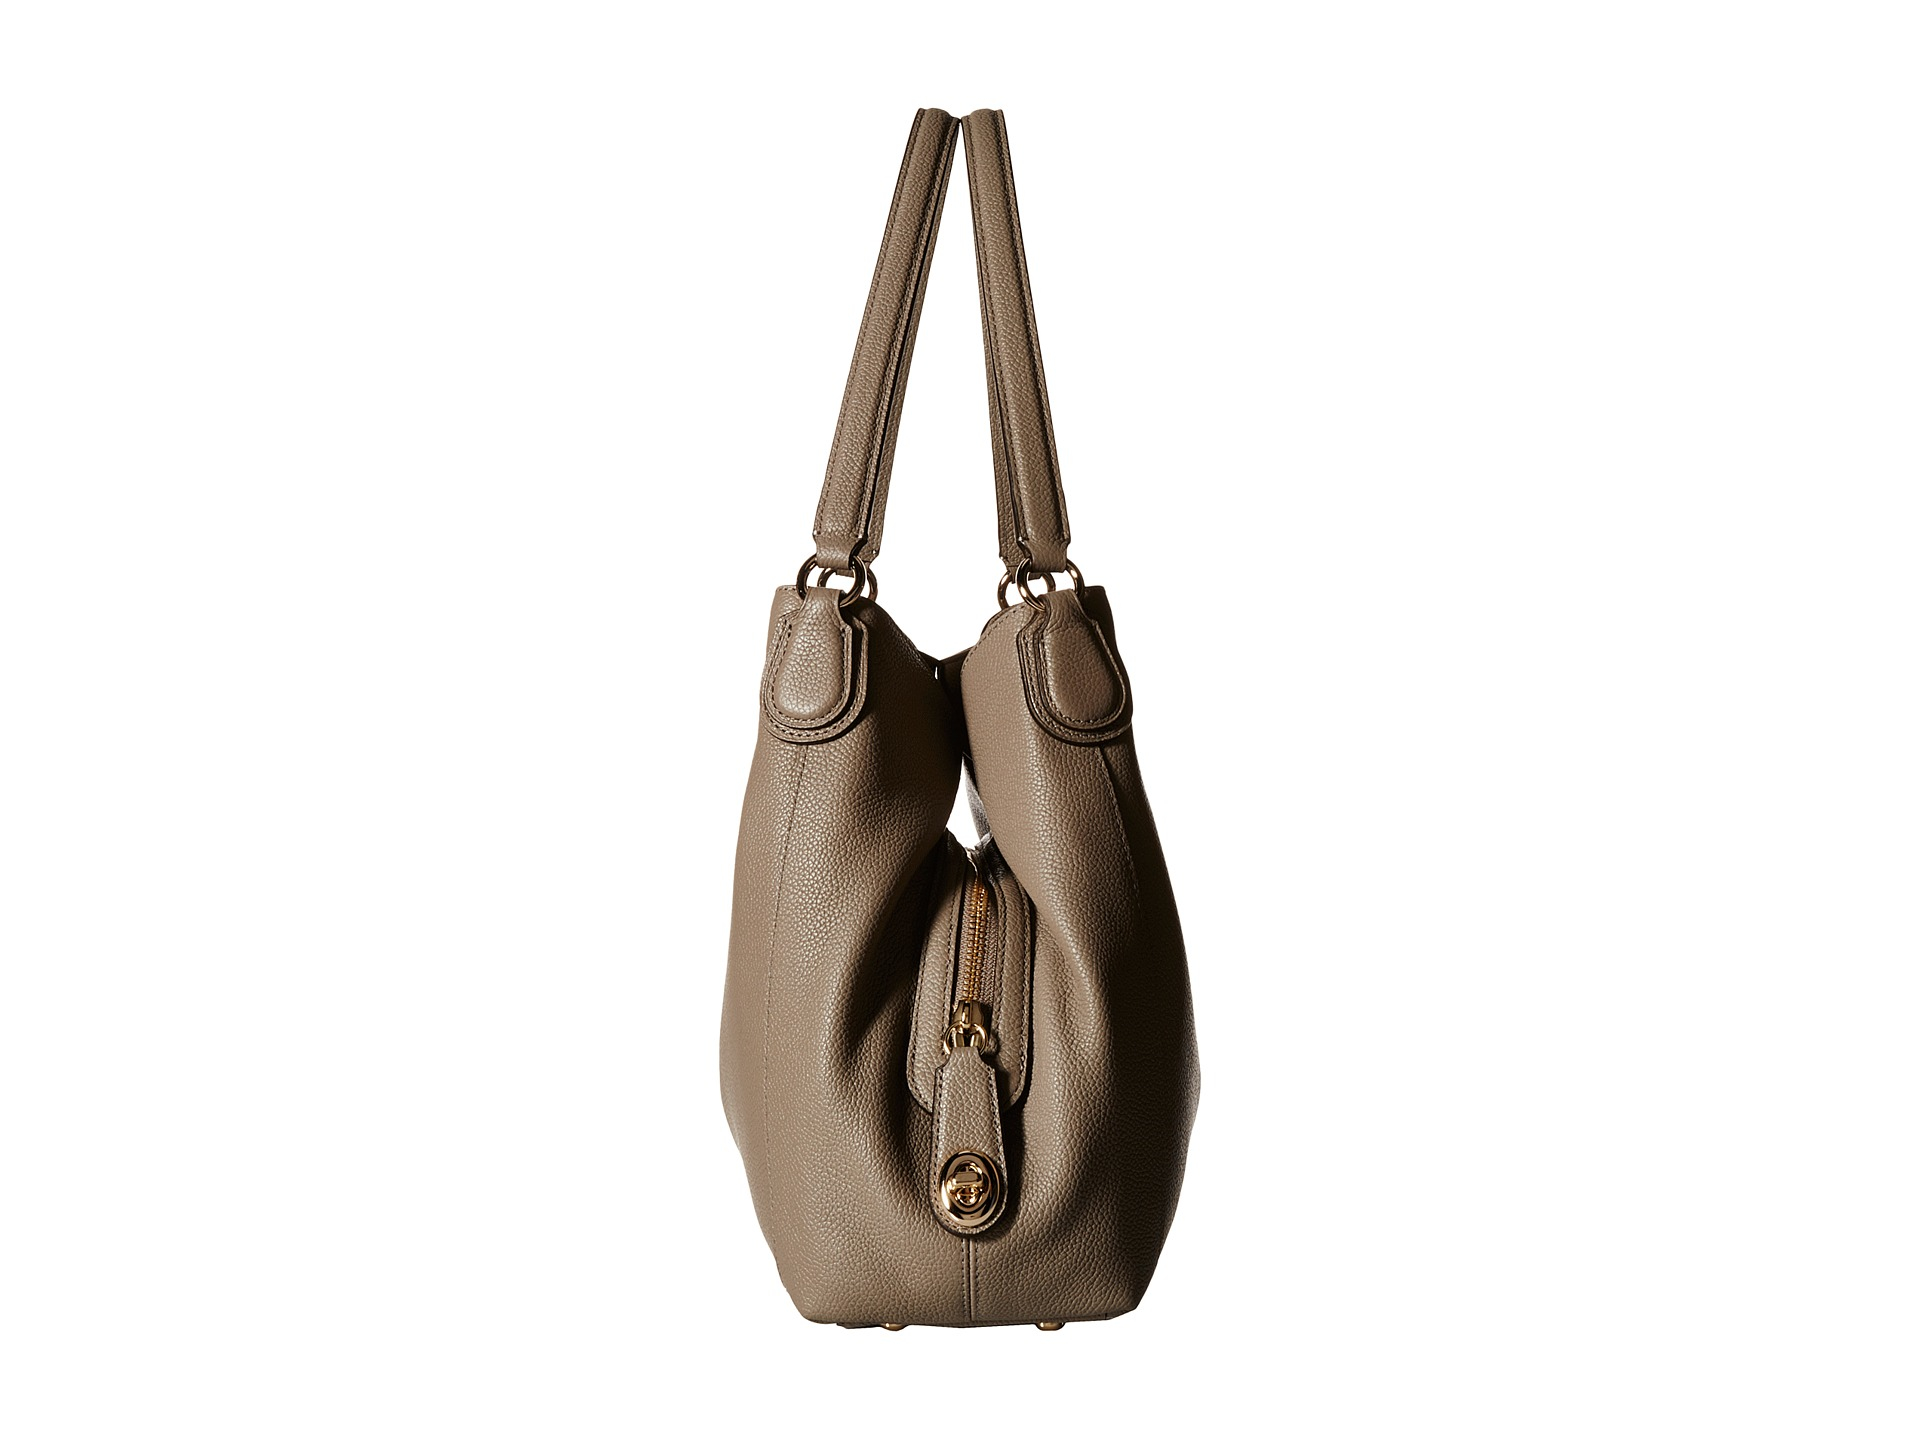 Leather Edie Bag Refined Pebble 31 Natural Shoulder Coach E9IYeWD2bH